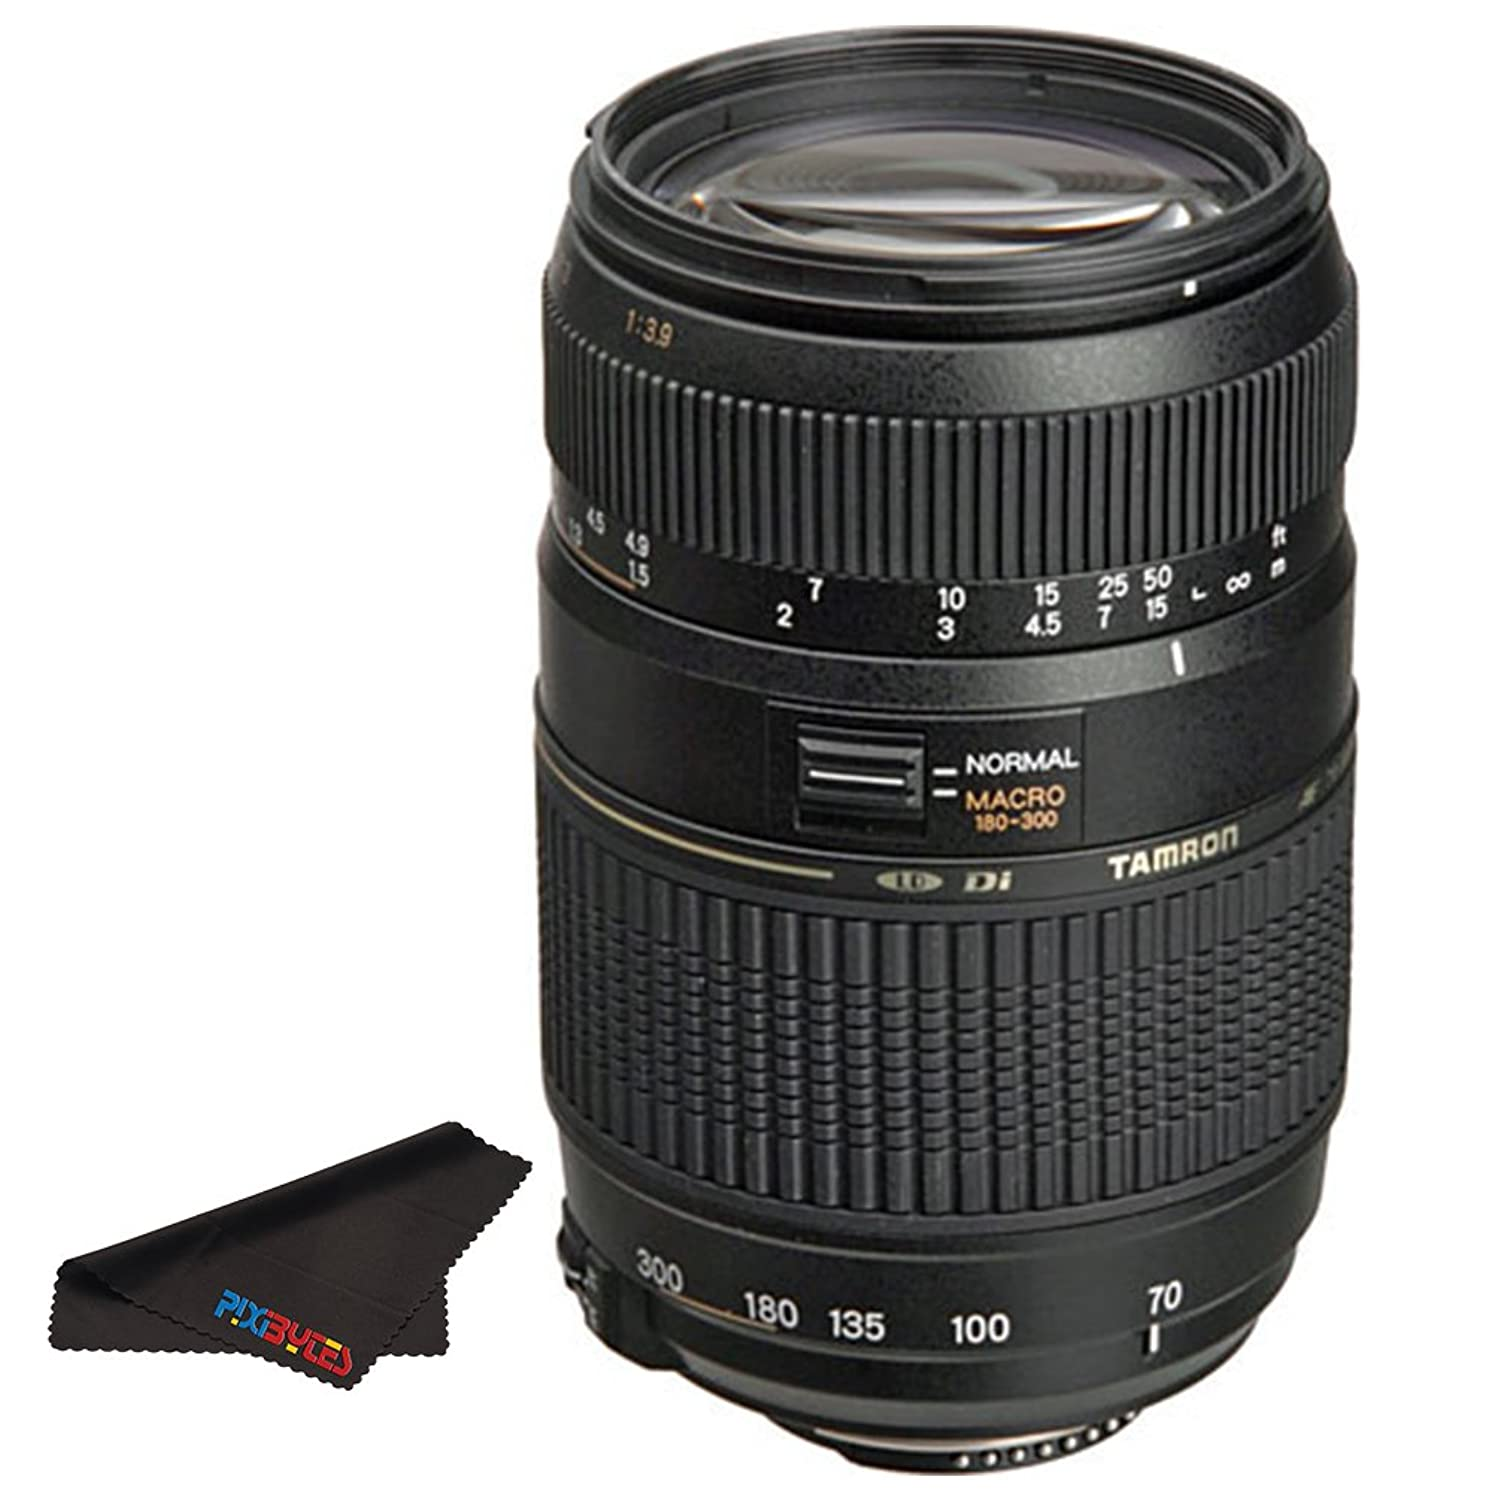 Tamron AF 70-300mm f/4.0-5.6 Di LD Macro Zoom Lens with Built In Motor for Nikon Digital